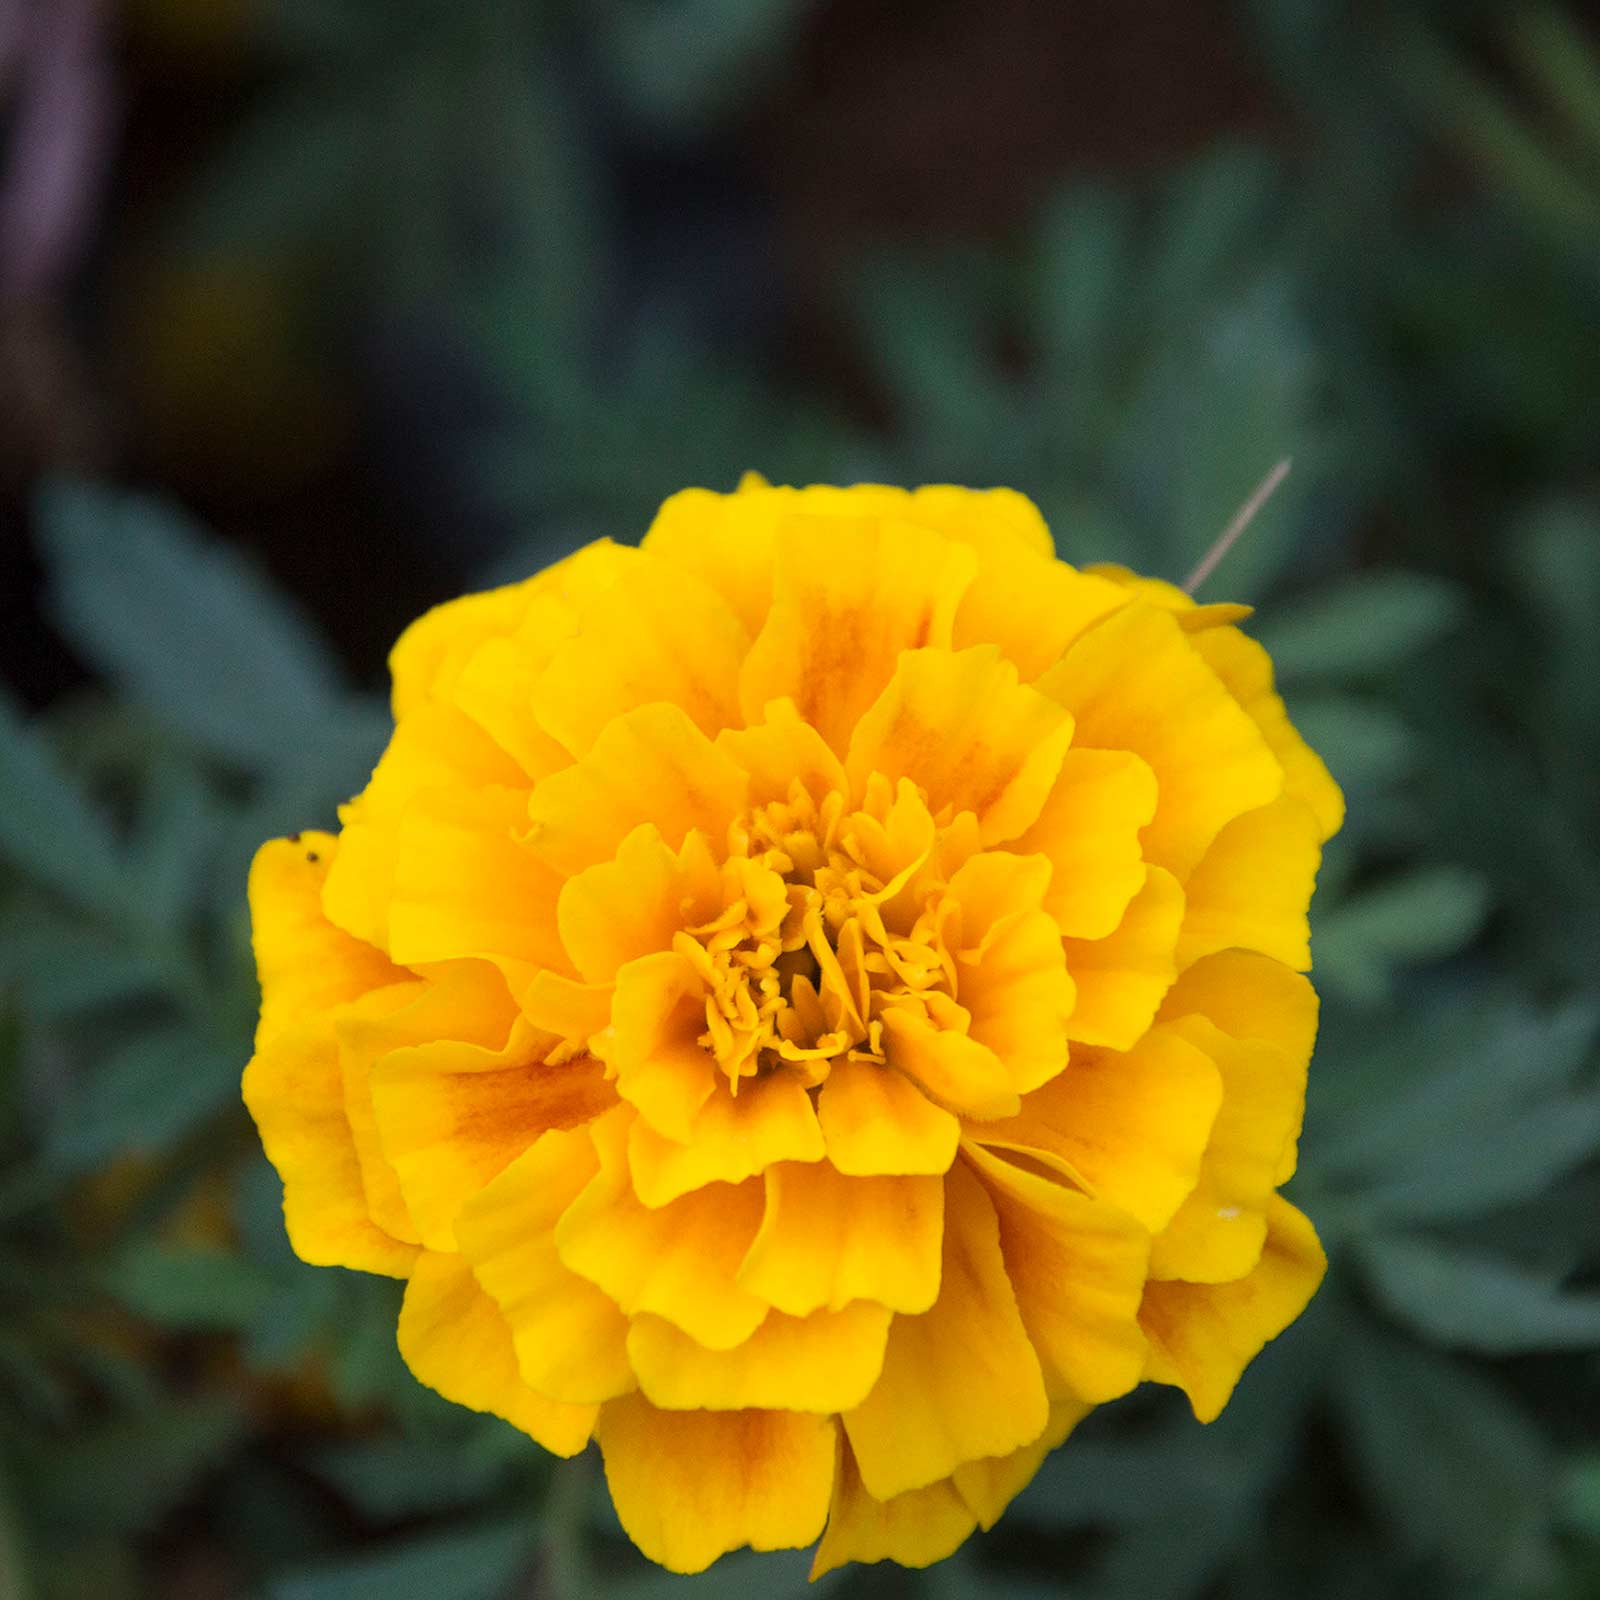 French Marigold Flower Garden Seeds - Hero Series - Flame - 1000 Seeds - Annual Flower Gardening Seeds - Tagetes patula